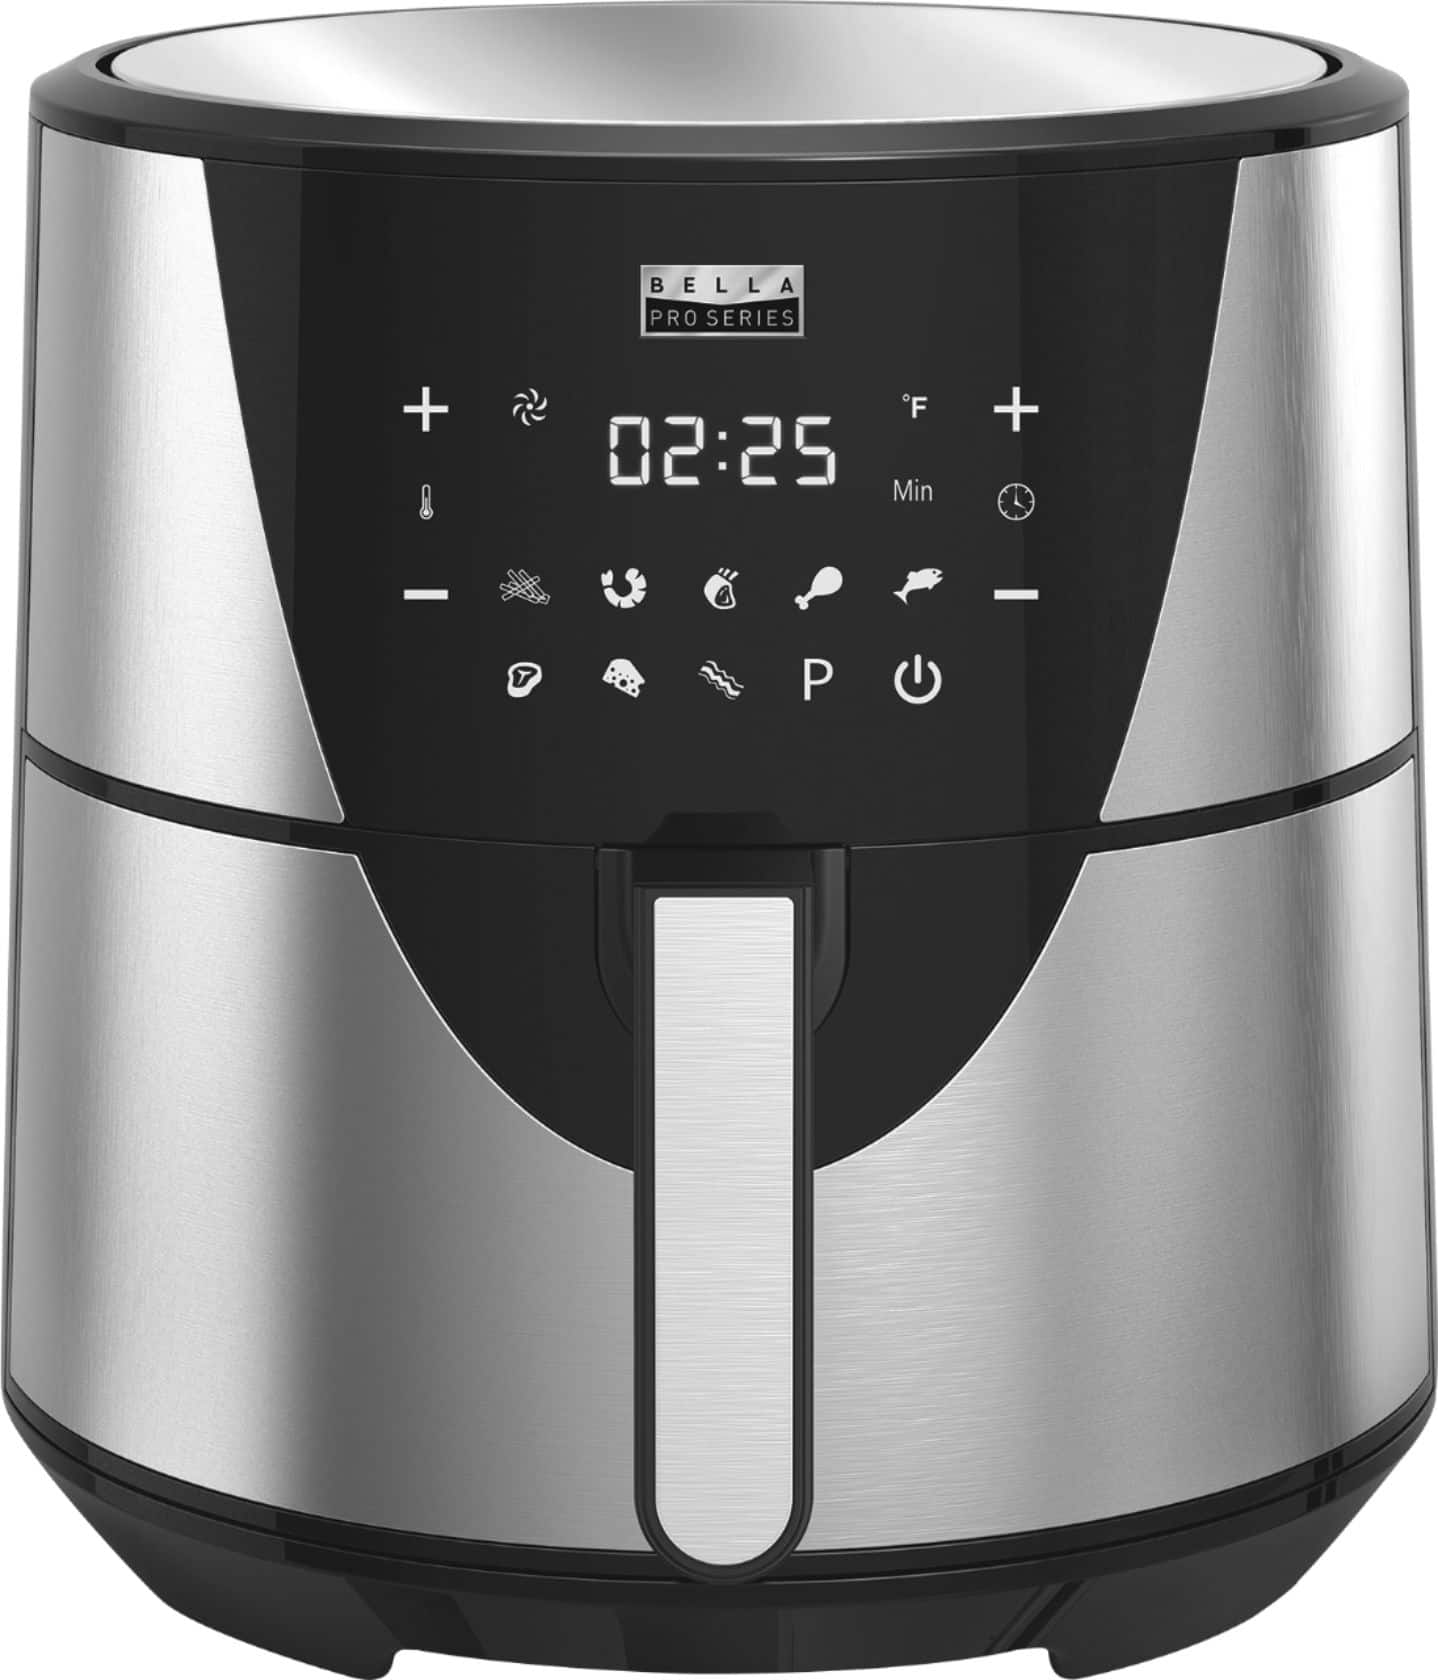 8-Quart Bella Pro Series Touchscreen Air Fryer (Stainless Steel) @BestBuy $60